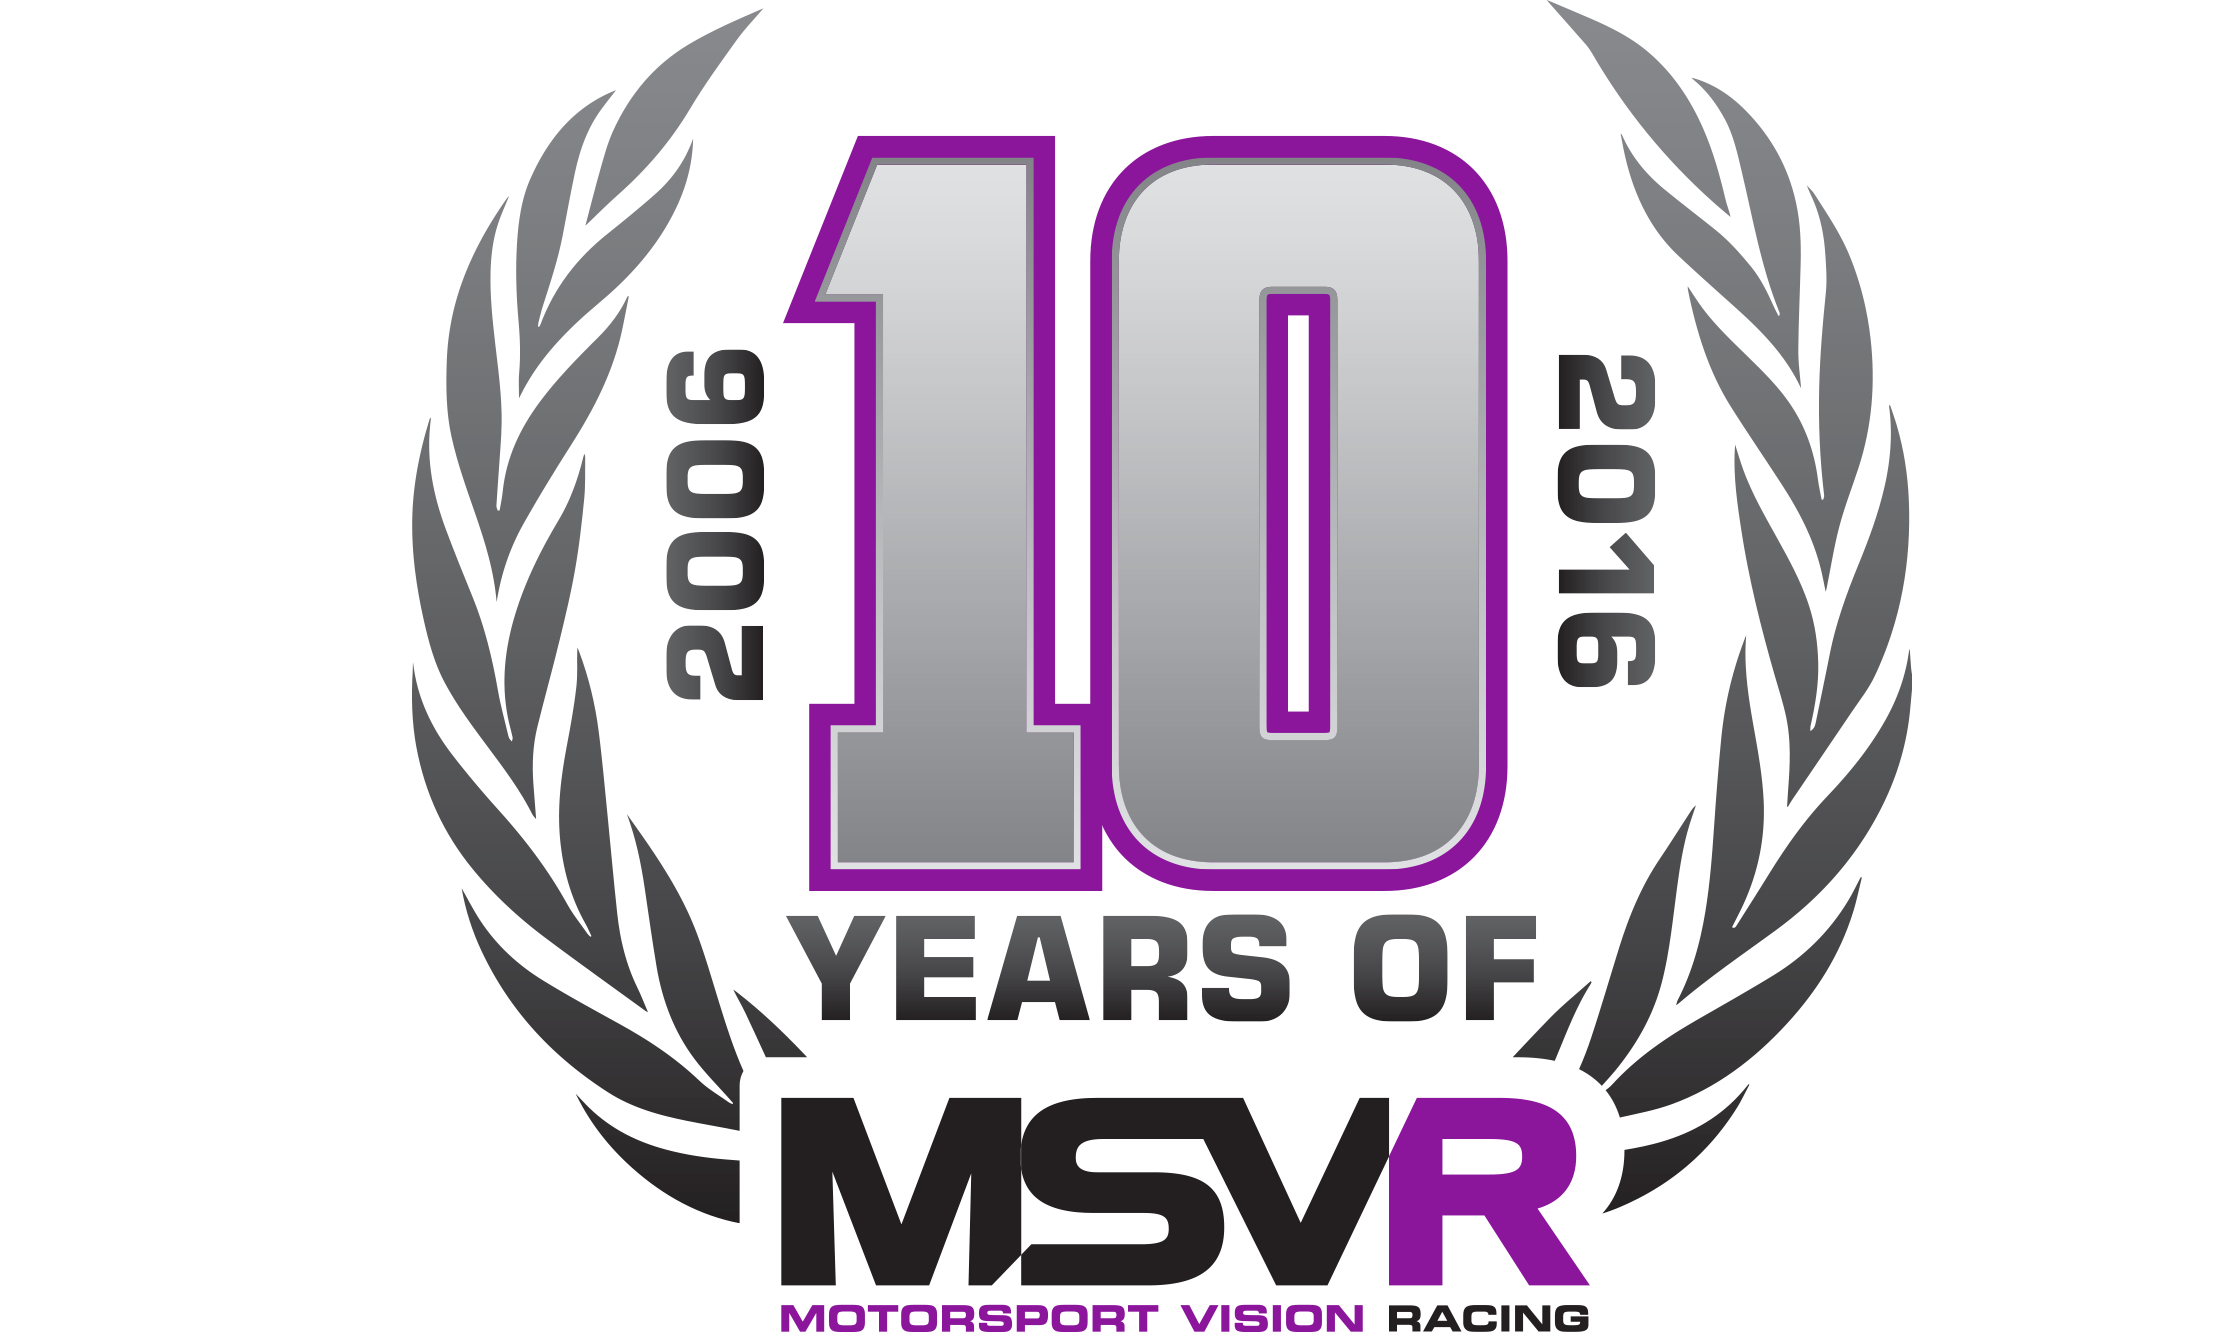 The History of MSVR